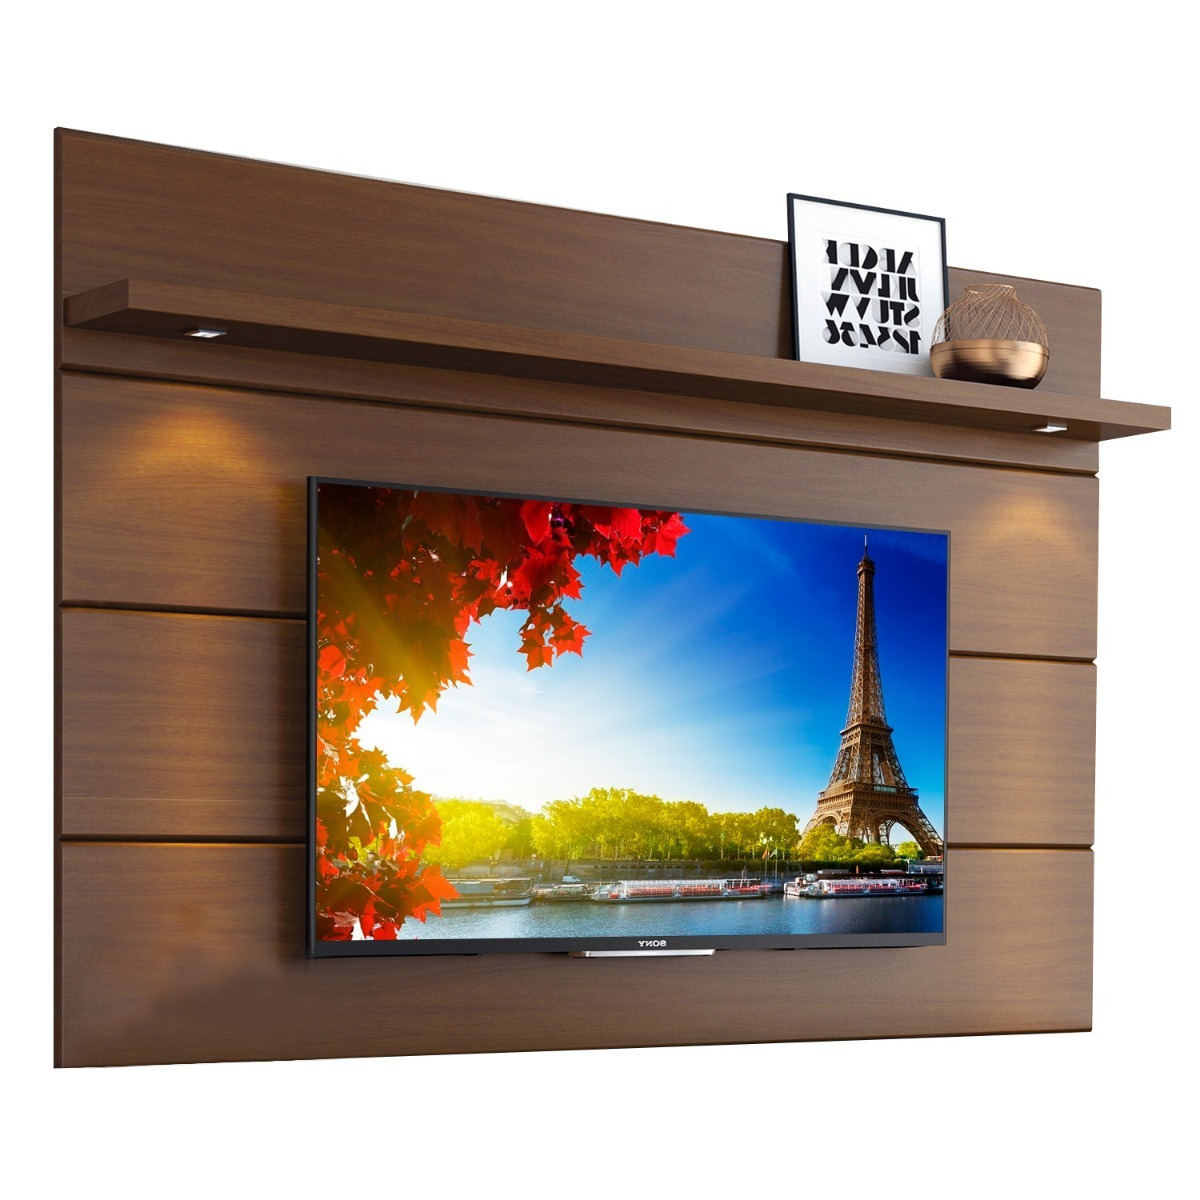 Mueble Tv Pared Panel Colgante Mueble Tv Led 60 De Pared 1 8 Horizon Mdf